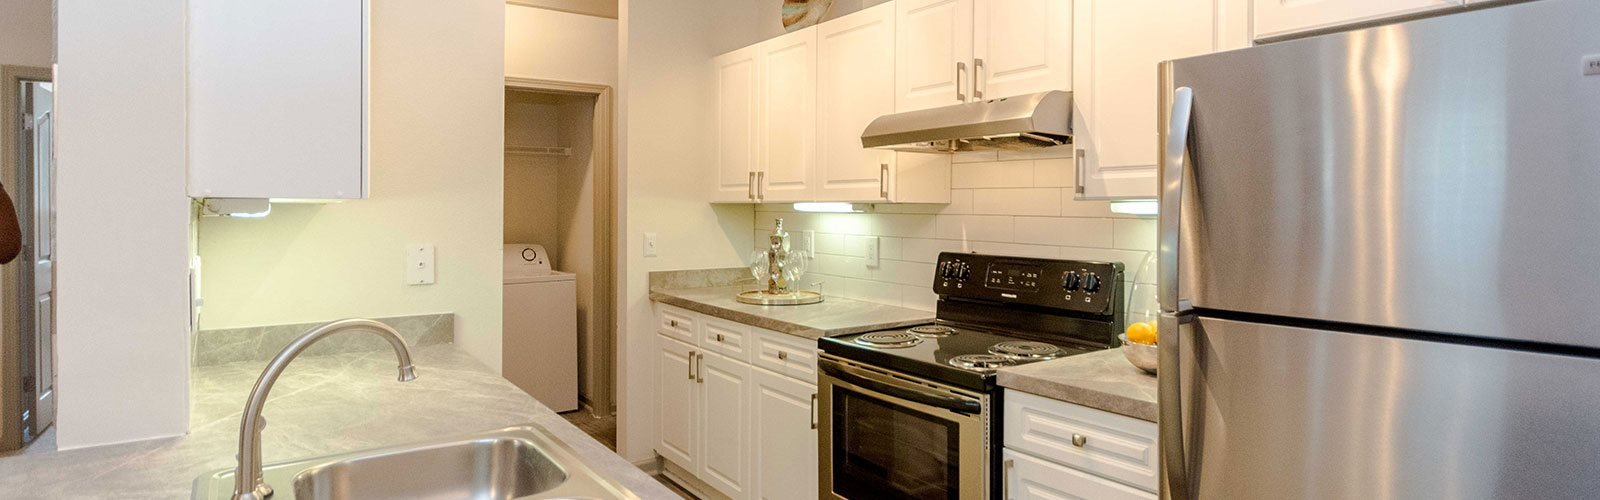 Eat-in Kitchens at The Views at Jacks Creek, Snellville, GA, 30039